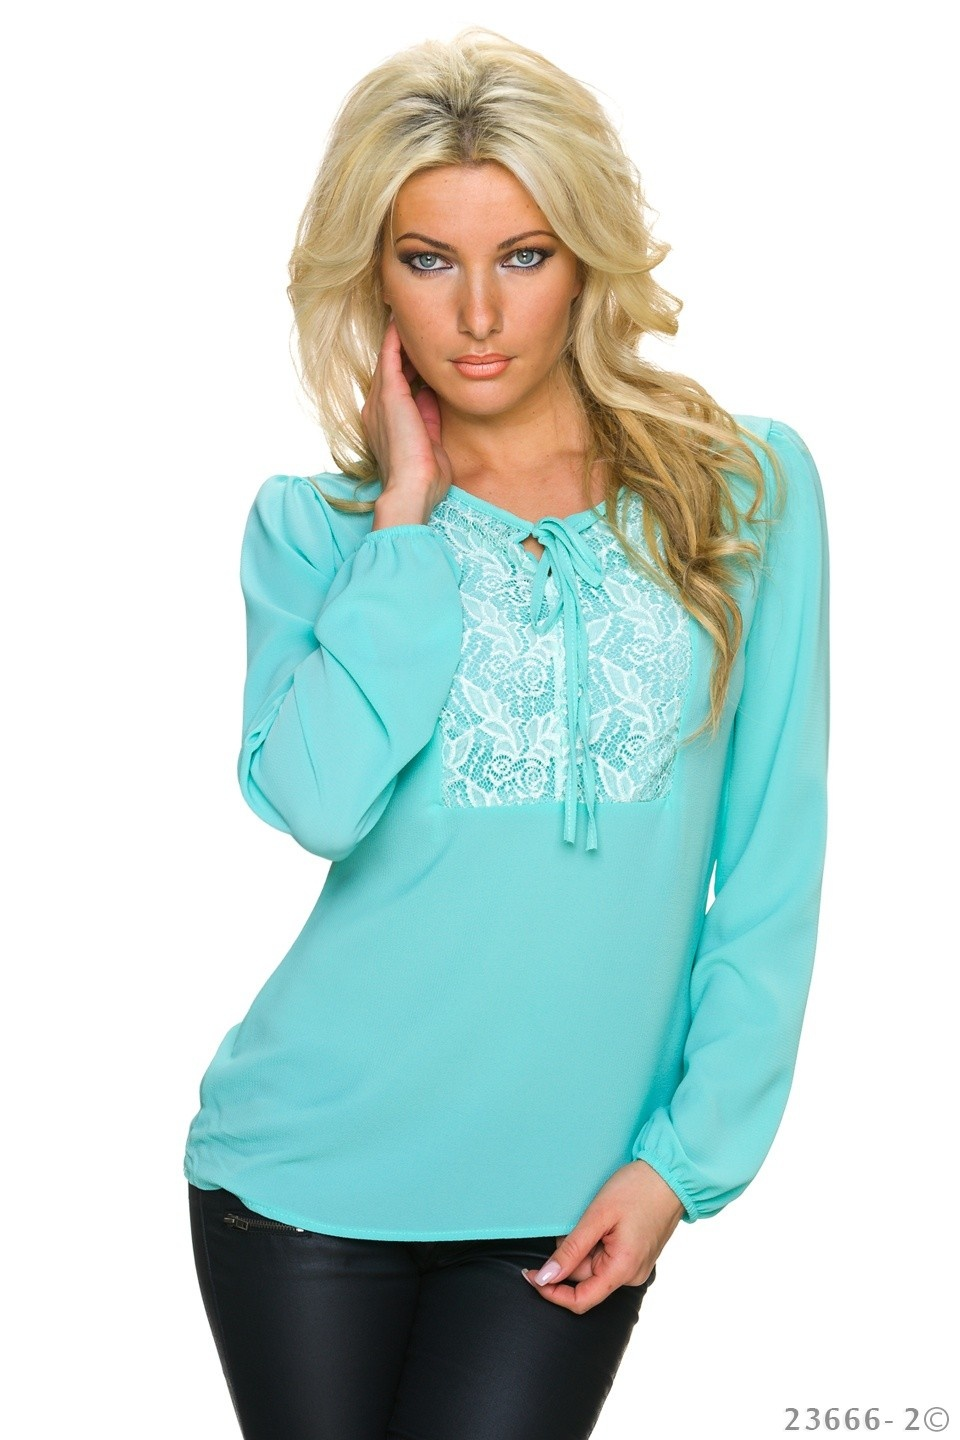 Blouse Turquoise-Groen